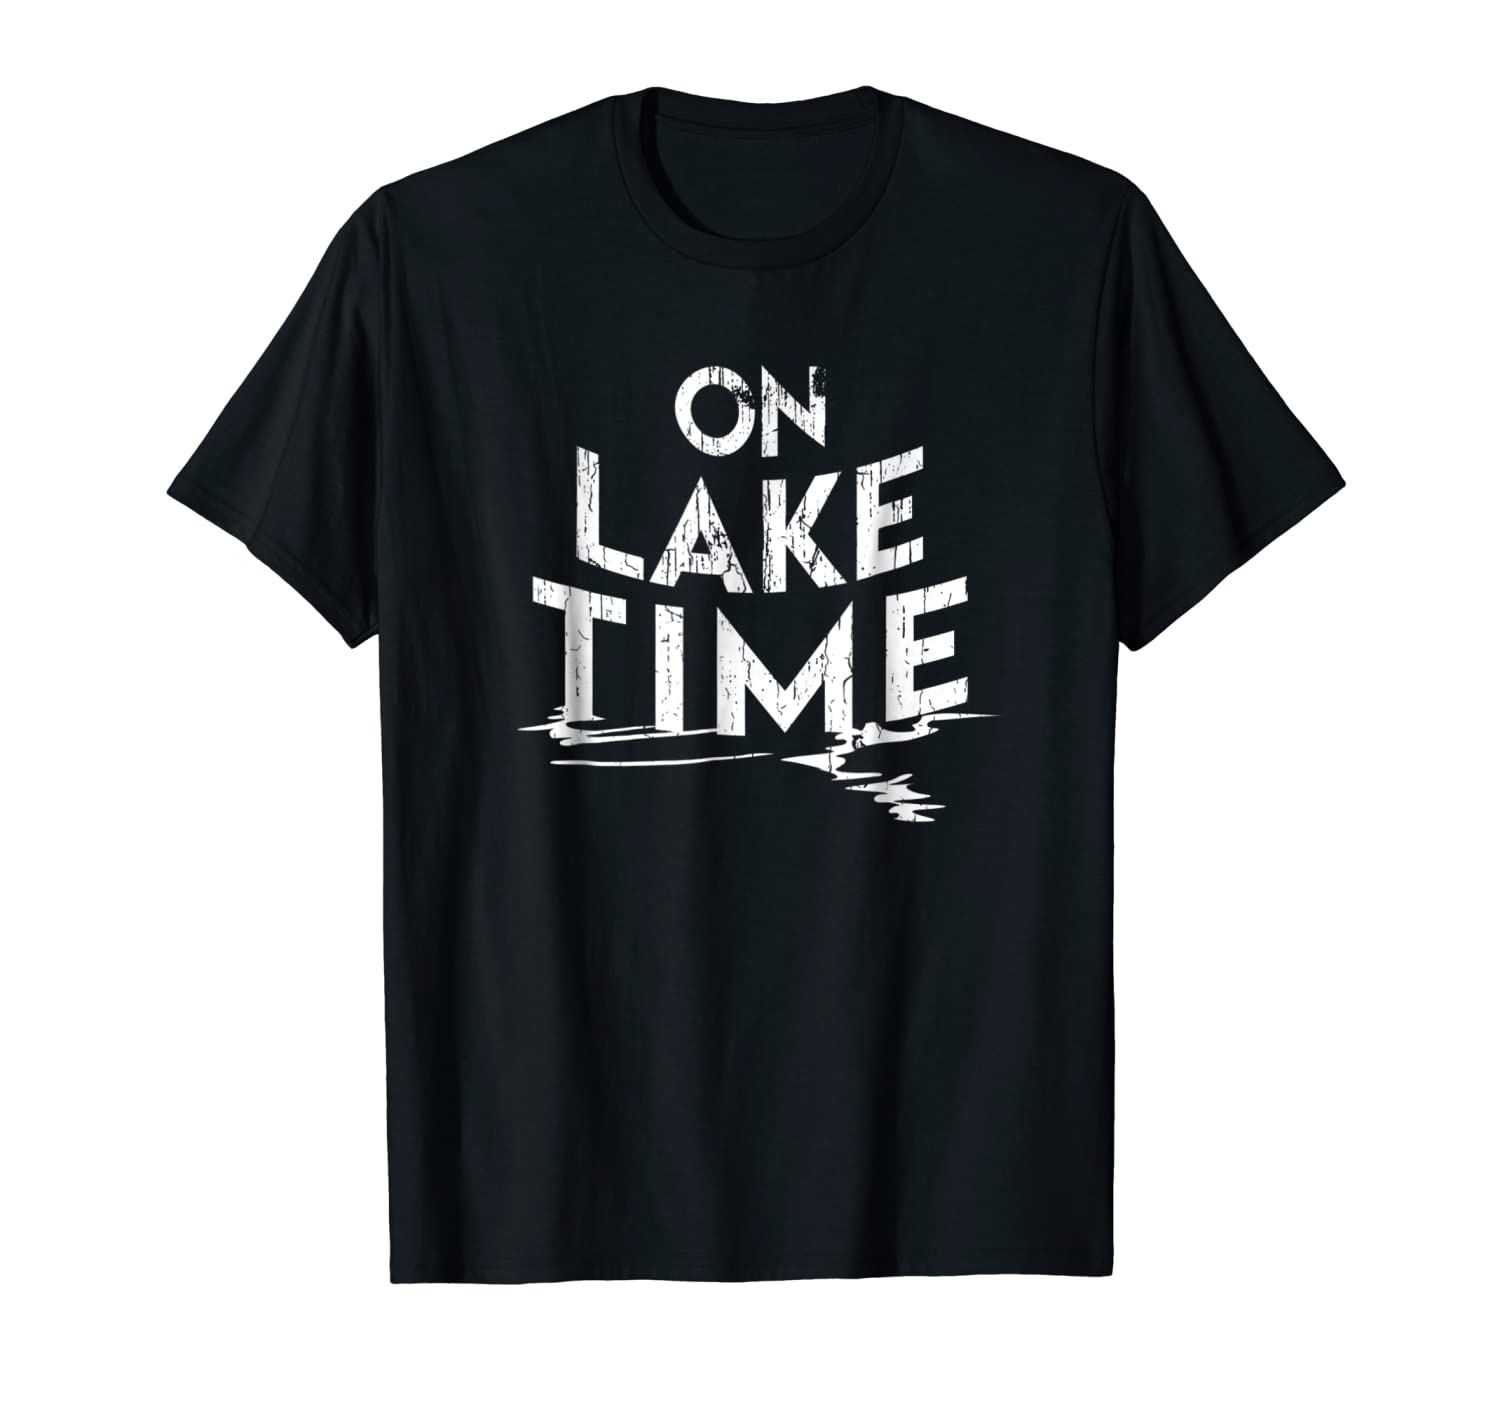 fca78dab5 Amazon.com: On Lake Time - Funny Summer Boating and Fishing T-Shirt:  Clothing